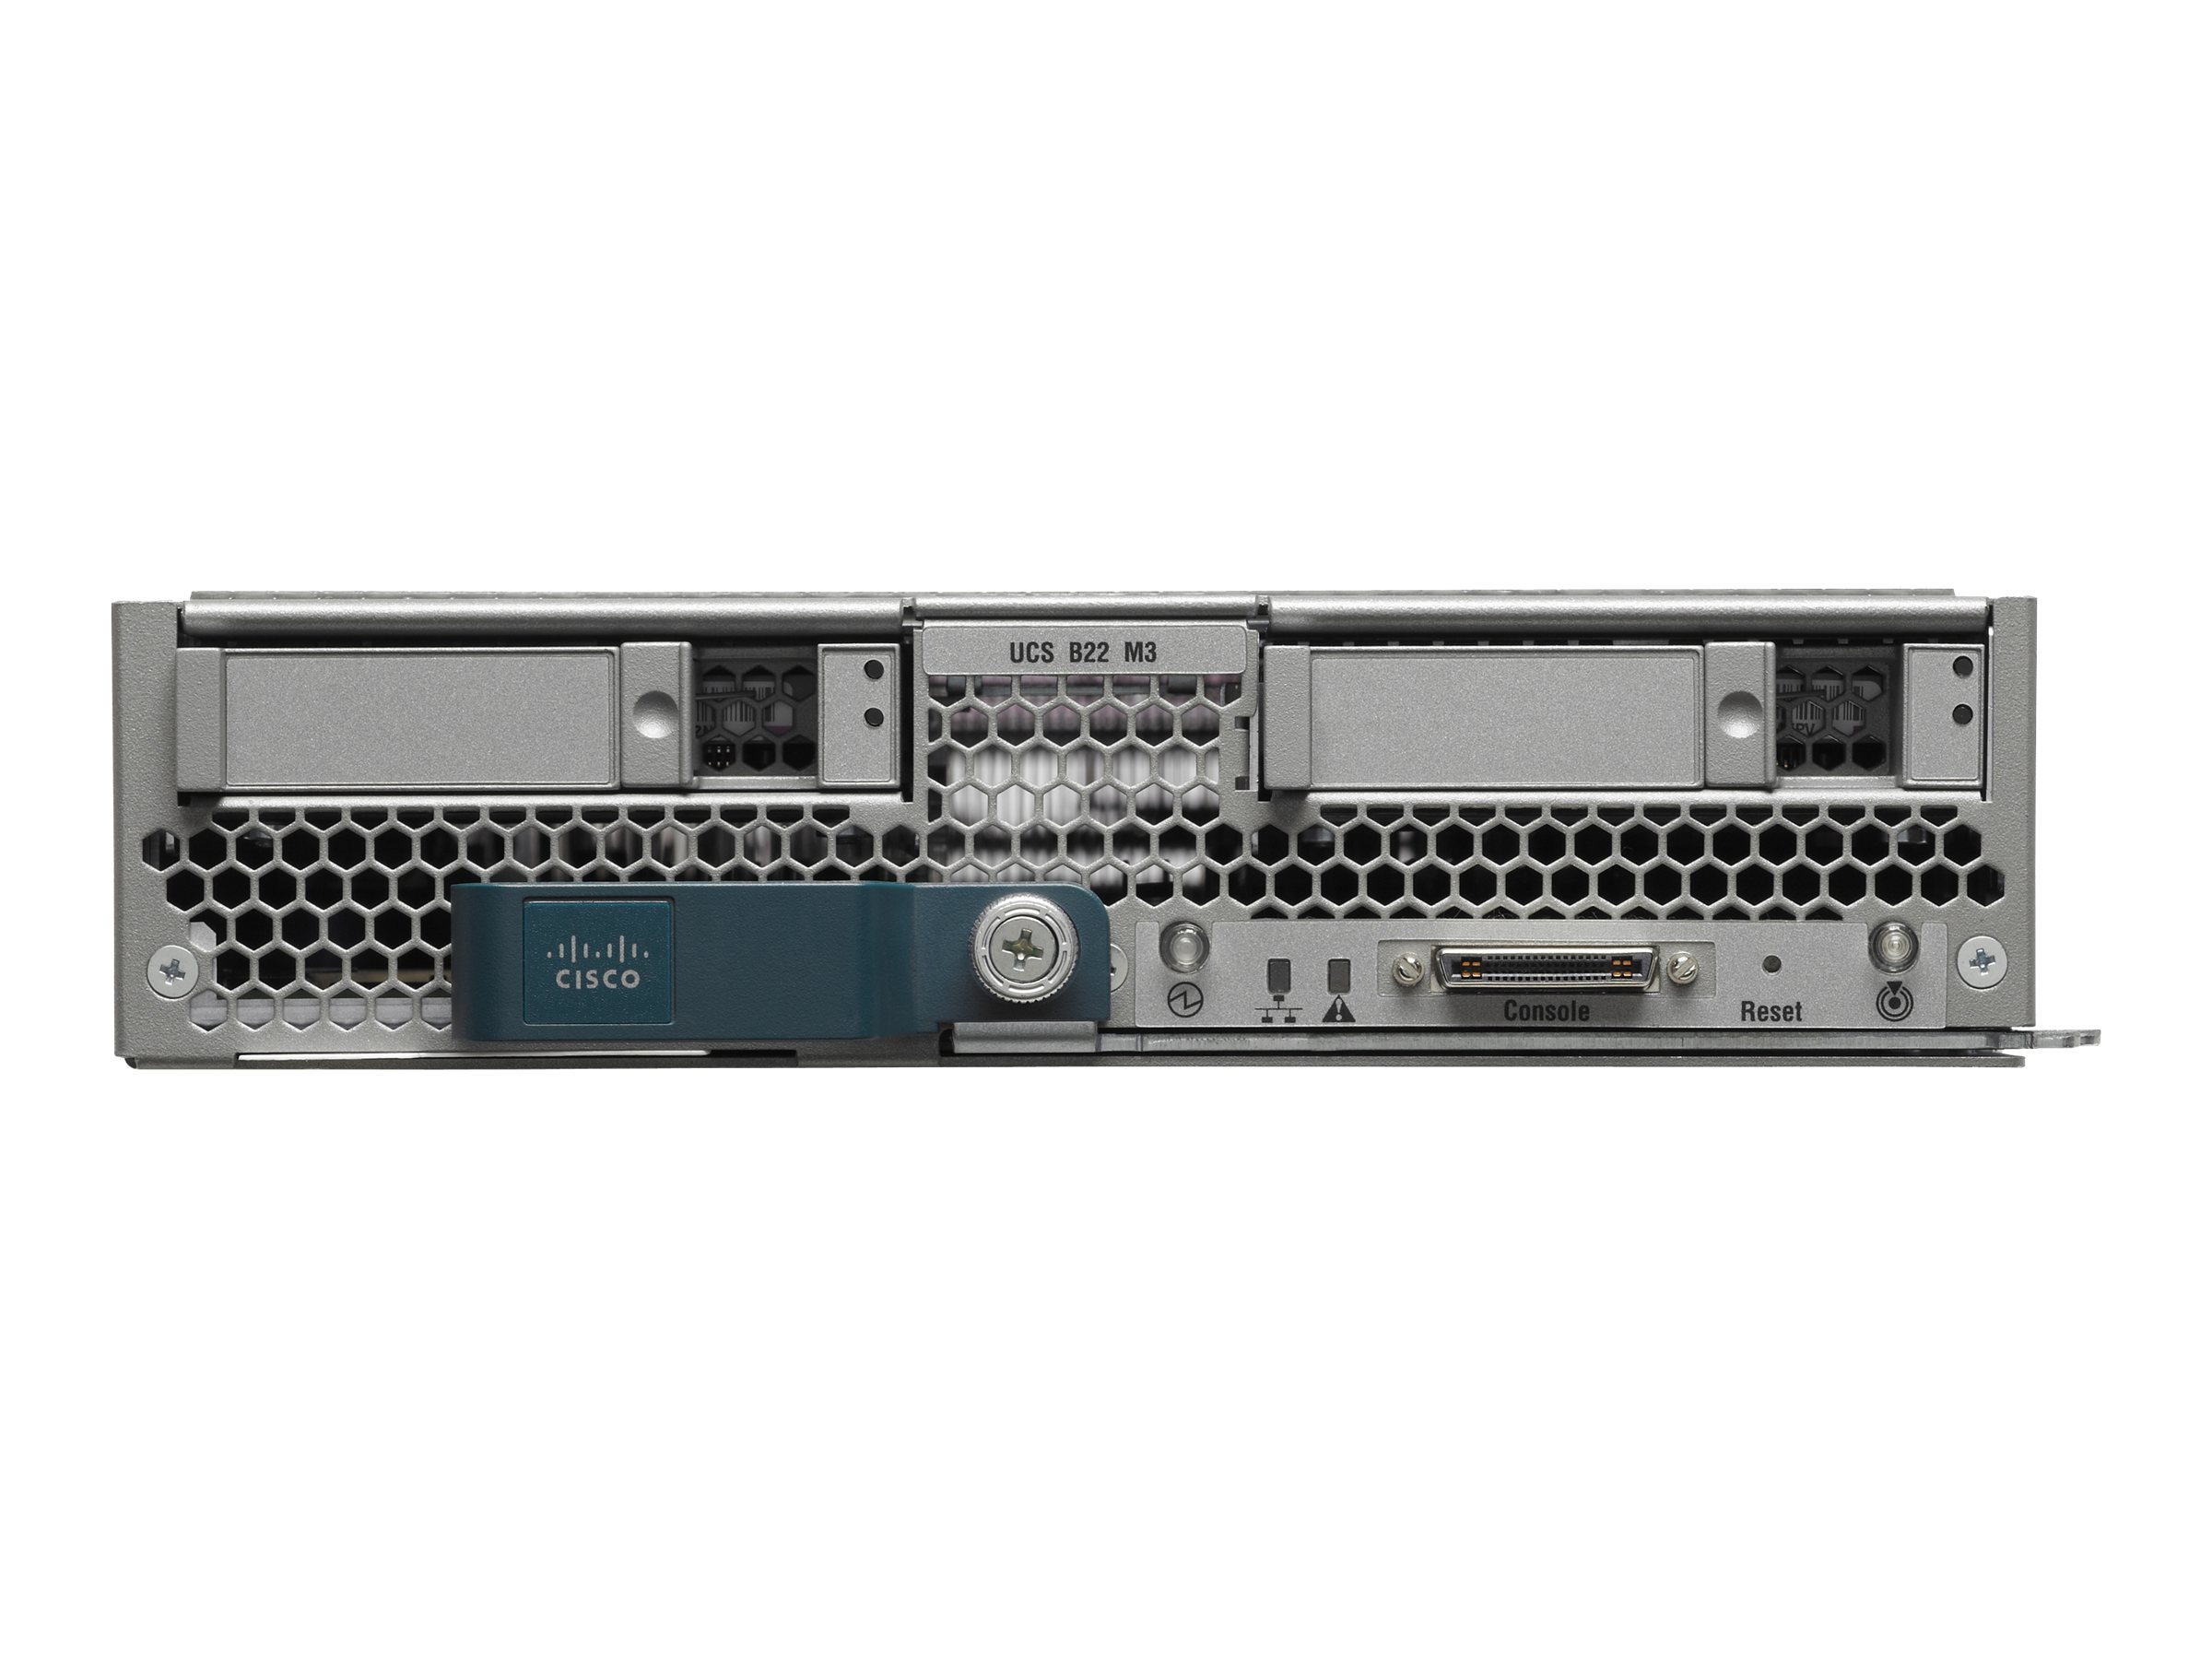 Cisco UCS B22 SmartPlay Entry Expansion Pack (2x) Xeon 6C E5-2420 1.9GHz 15MB 48GB 2x2.5 HS Bays 10GbE